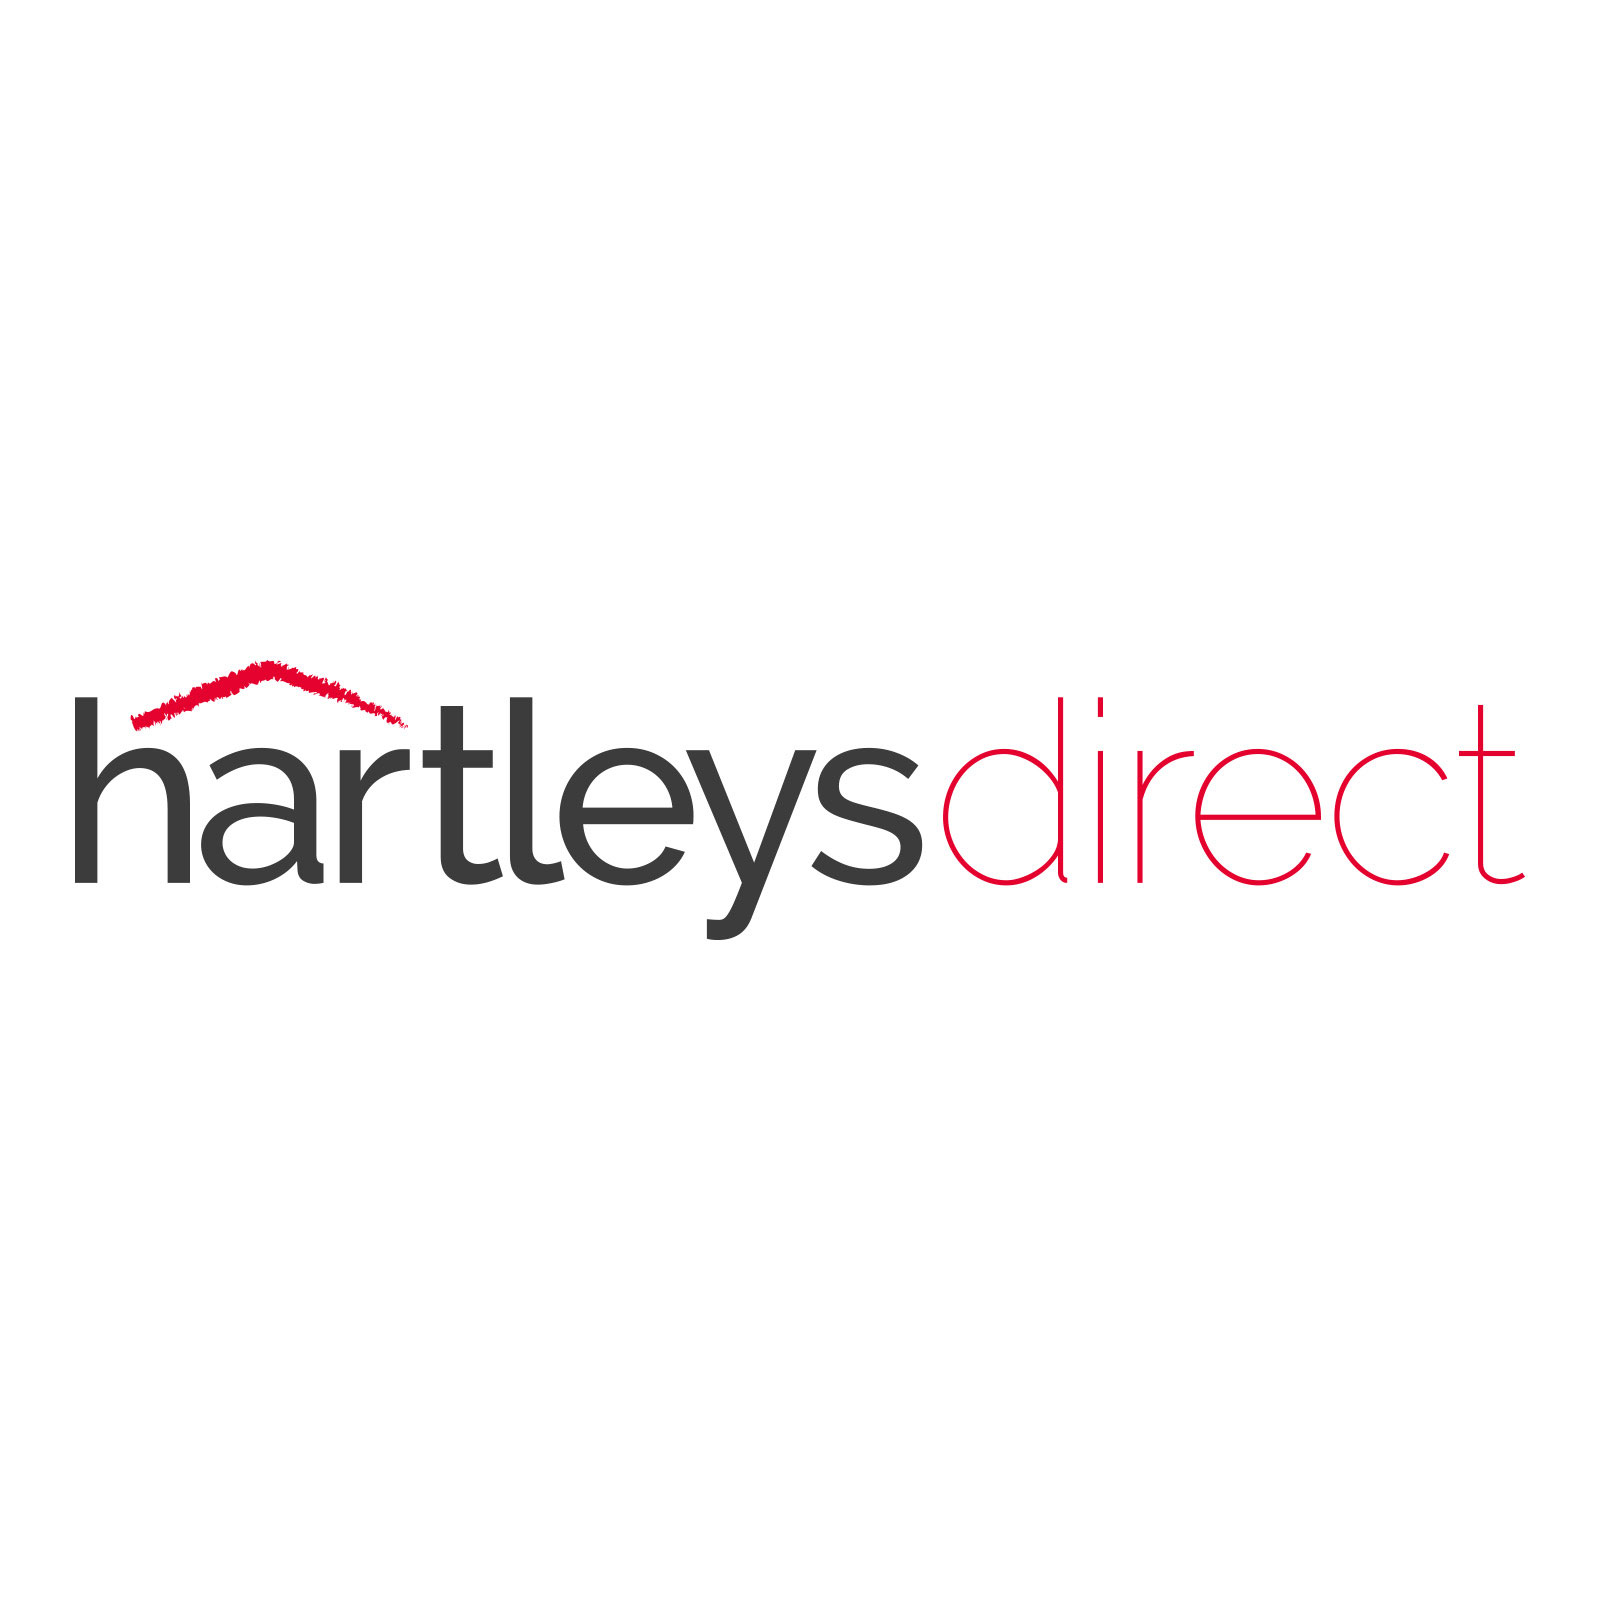 Hartleys-4-Tier-Black-Cube-Unit-with-Colour-Swatch-on-White-Background.jpg